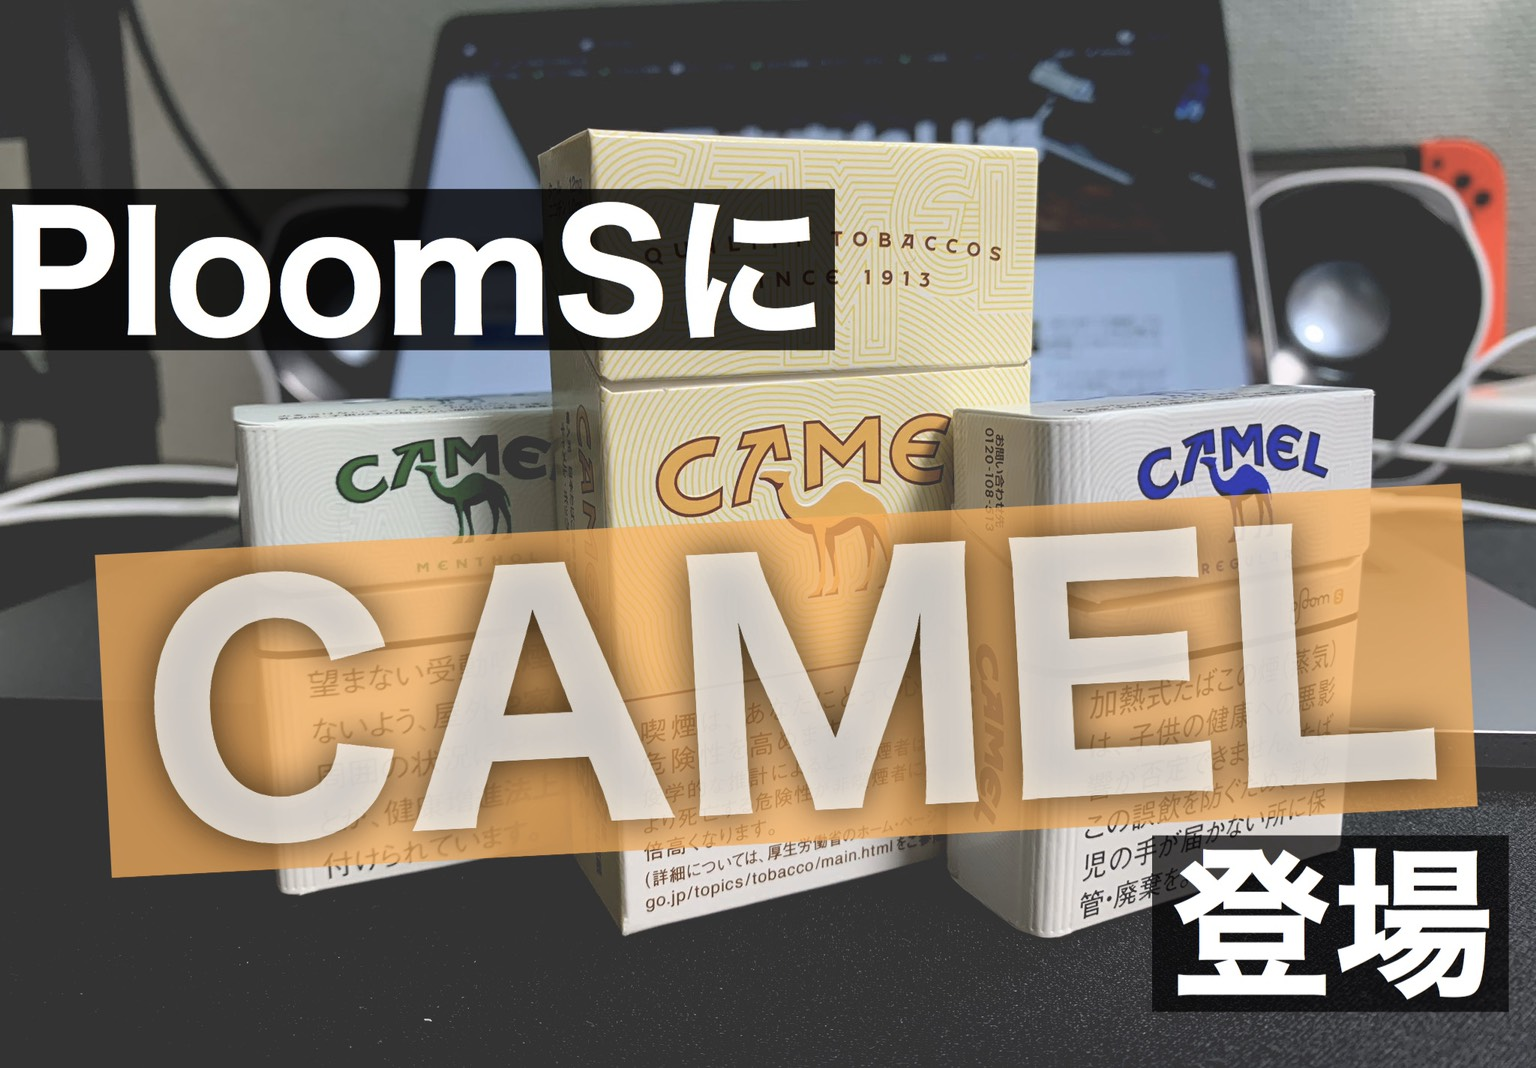 s-camel-stick-all-review eye catch